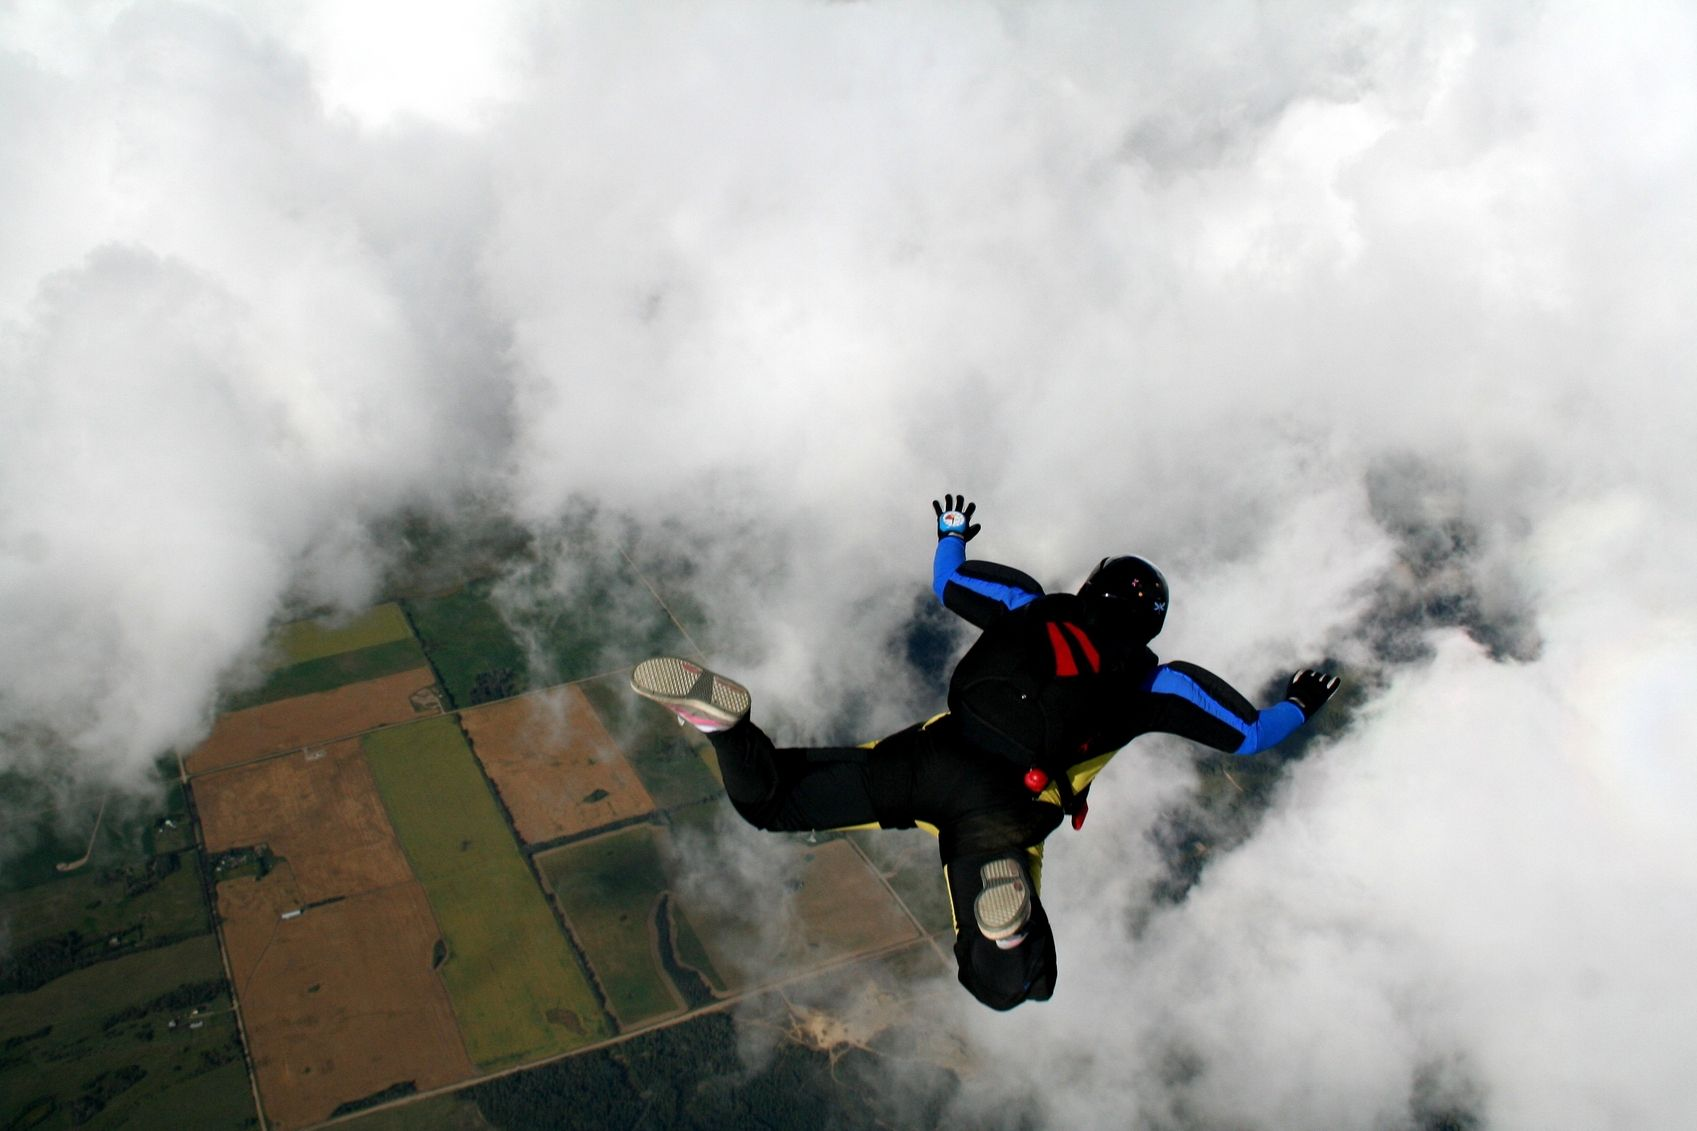 Sky Dive This Or That Questions Told You So Skydiving